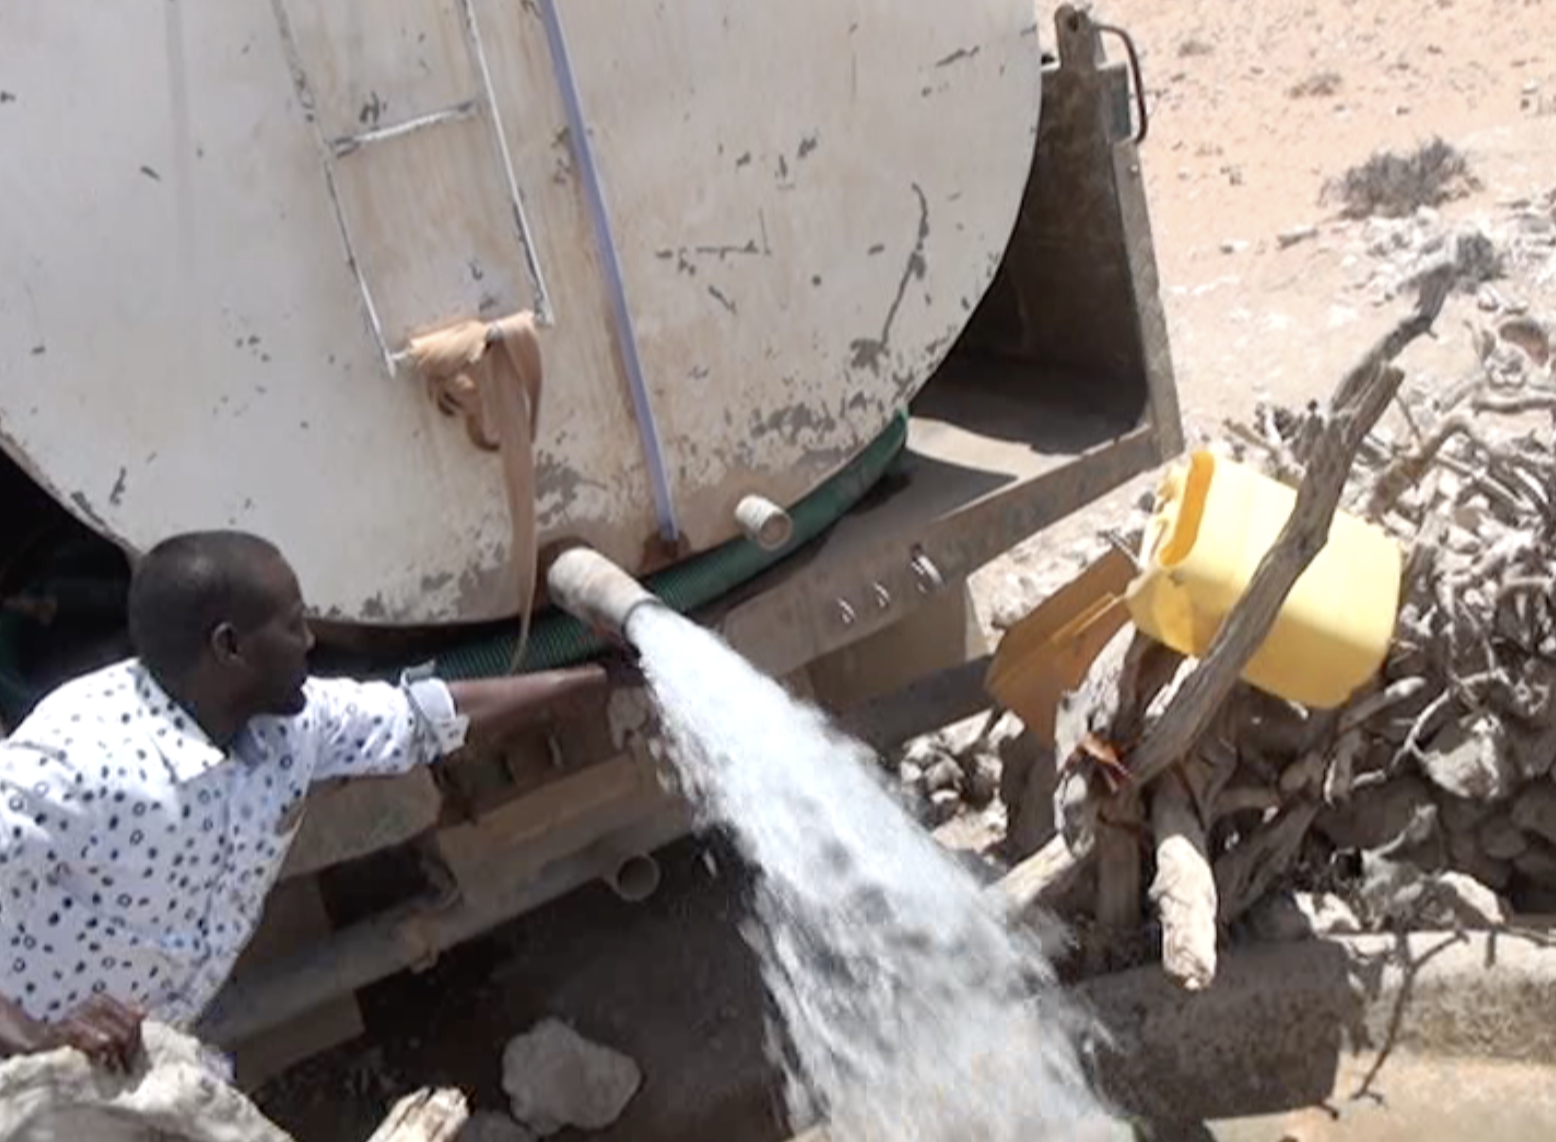 Water is put into the local village well